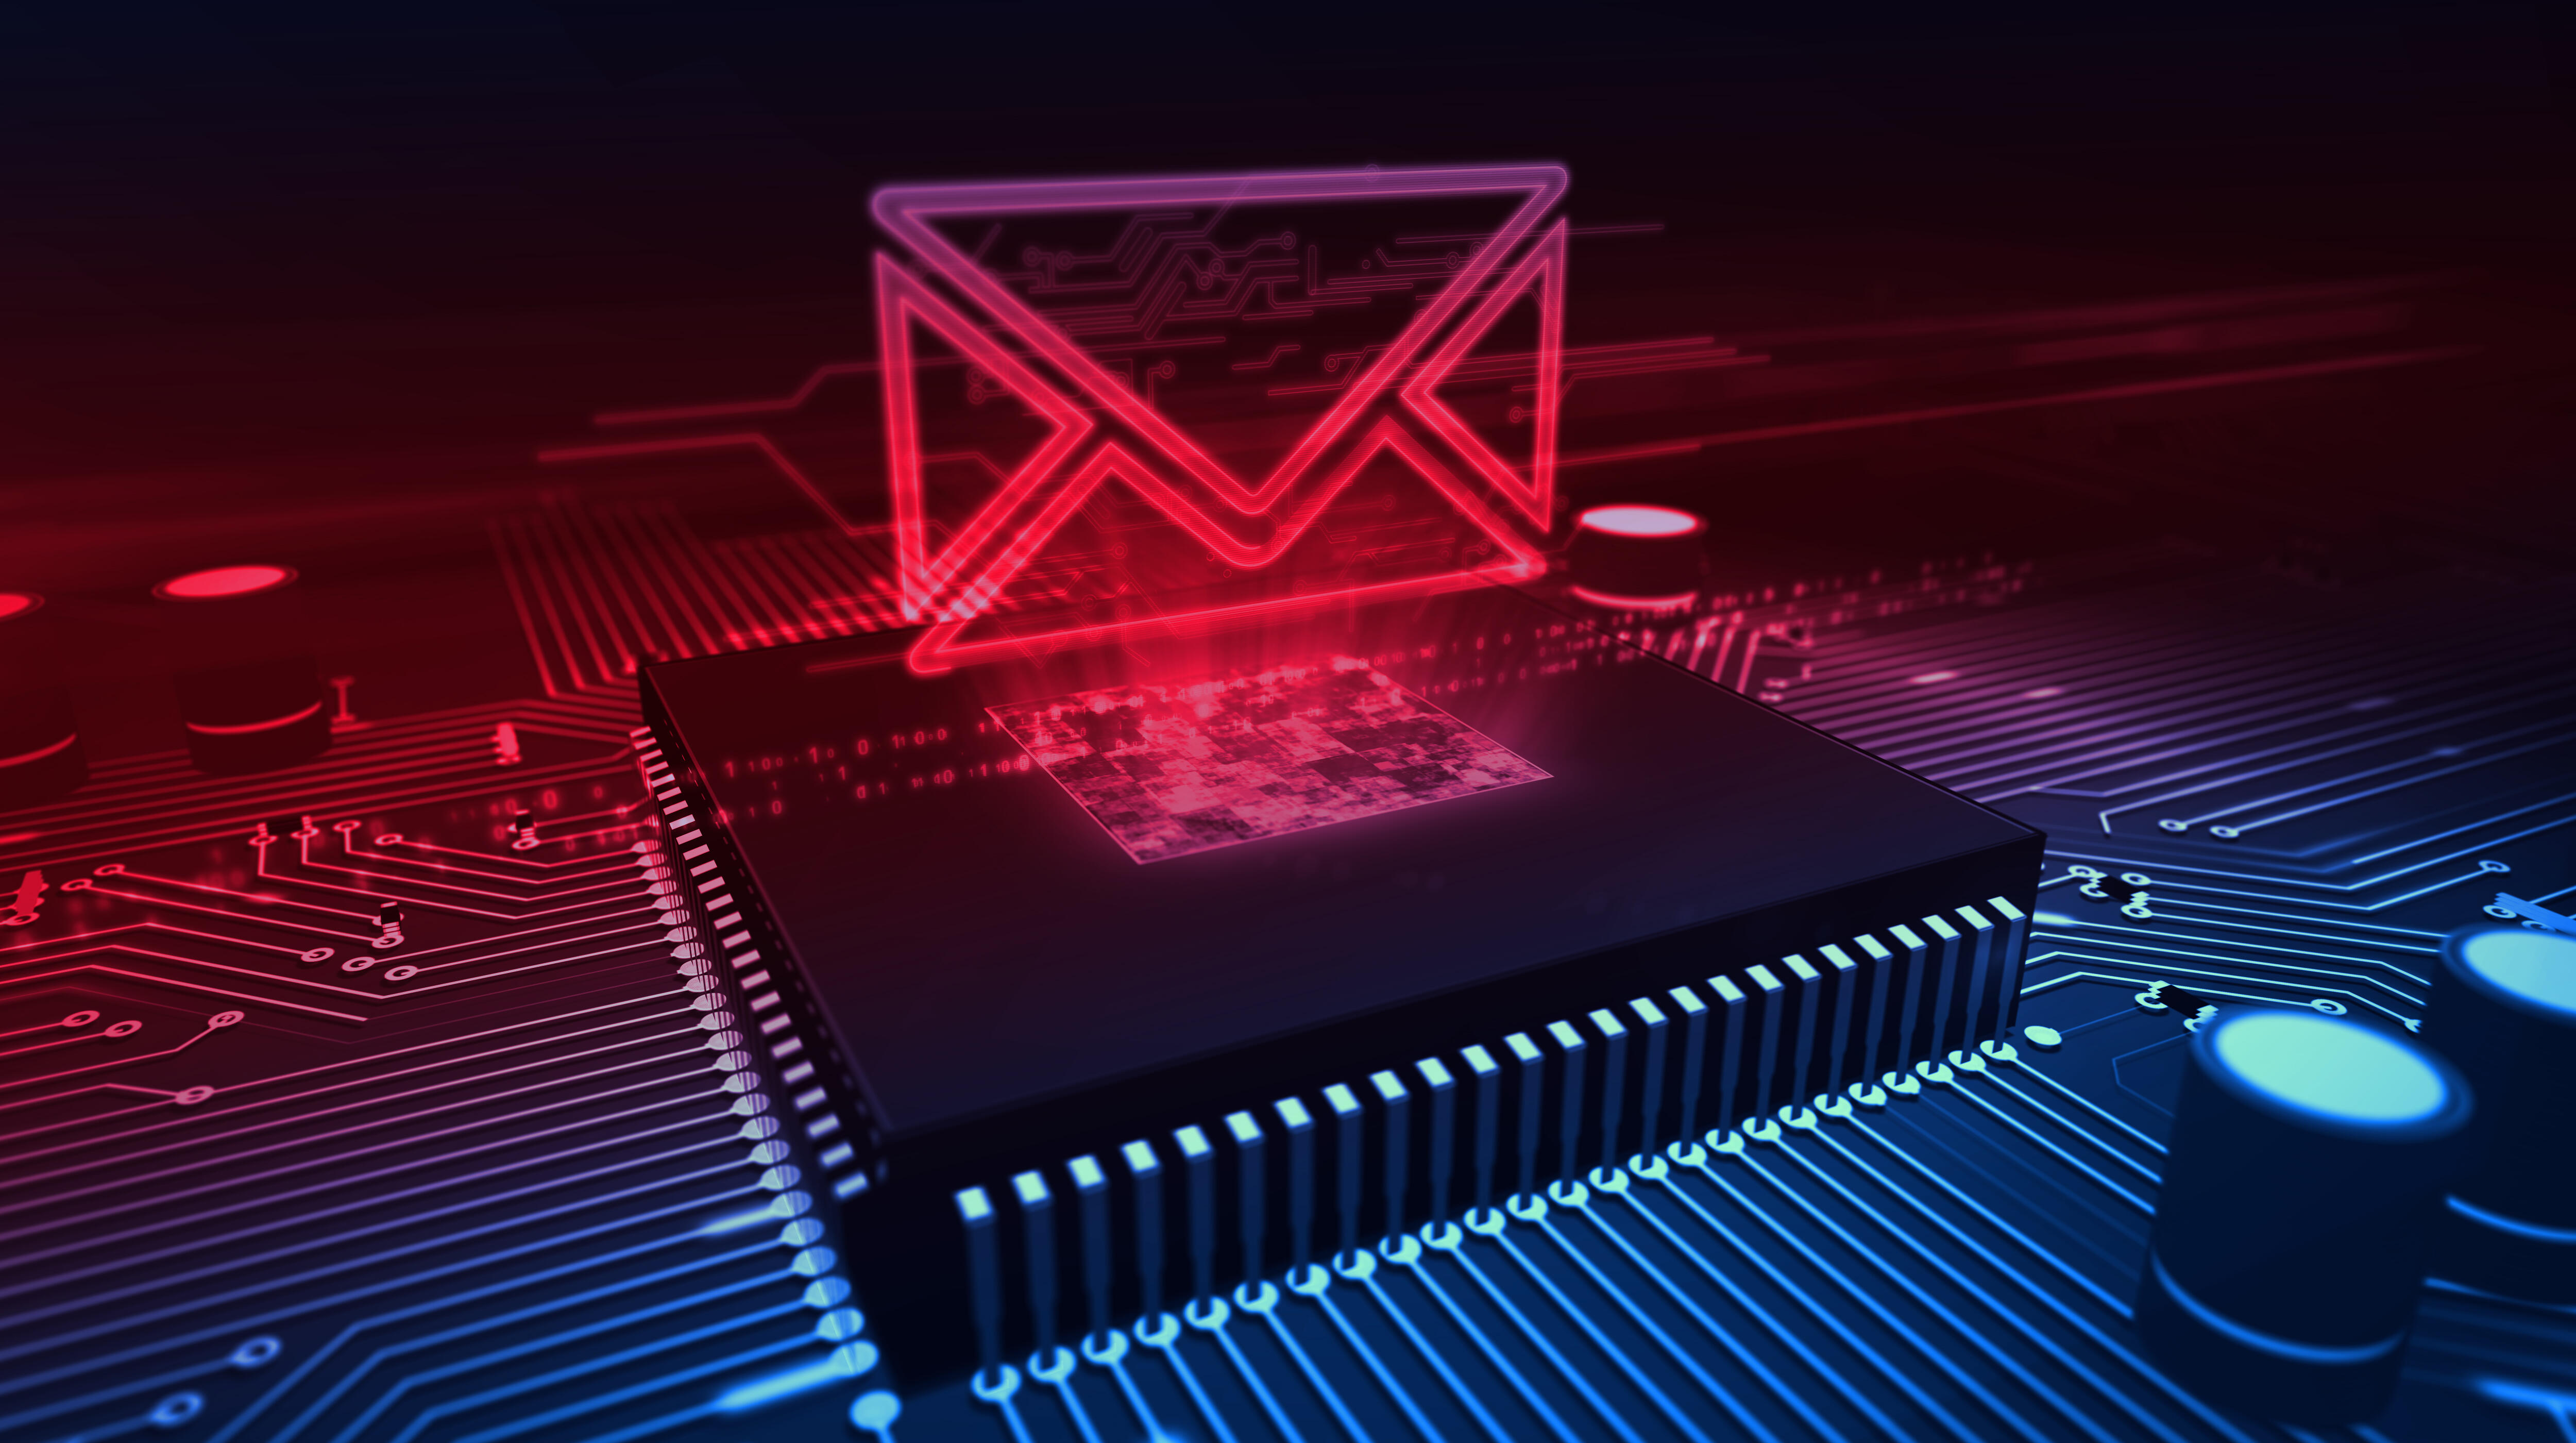 Internet email communication in cyberspace with envelope sign hologram over working cpu in background